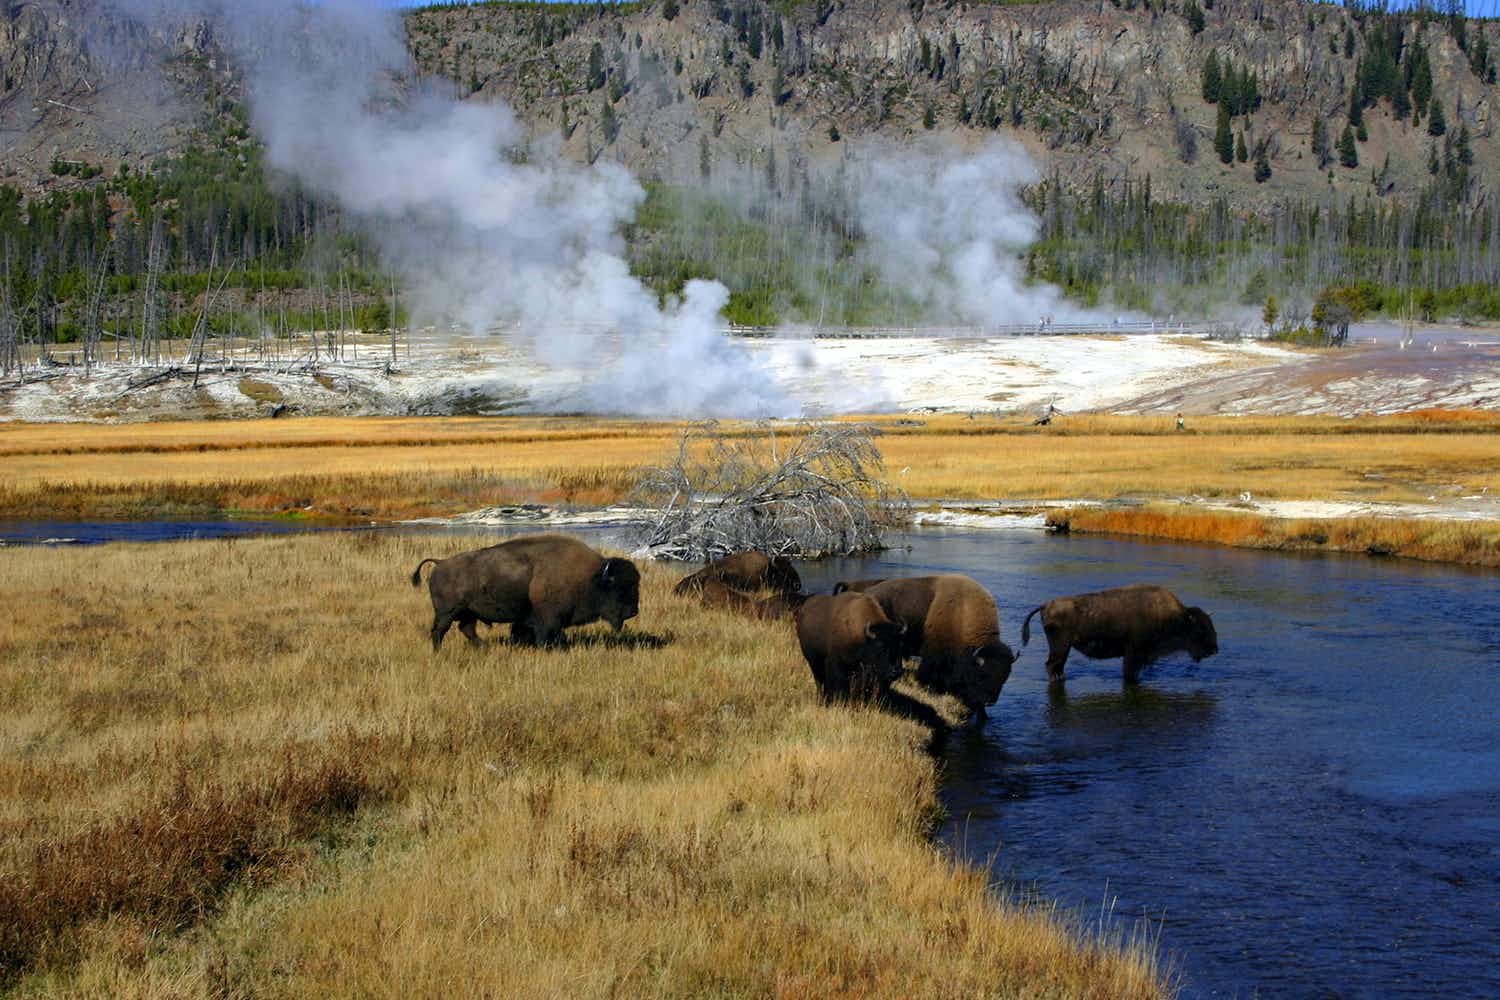 Insider's guide to Yellowstone: where to trek and geyser gaze without the crowds